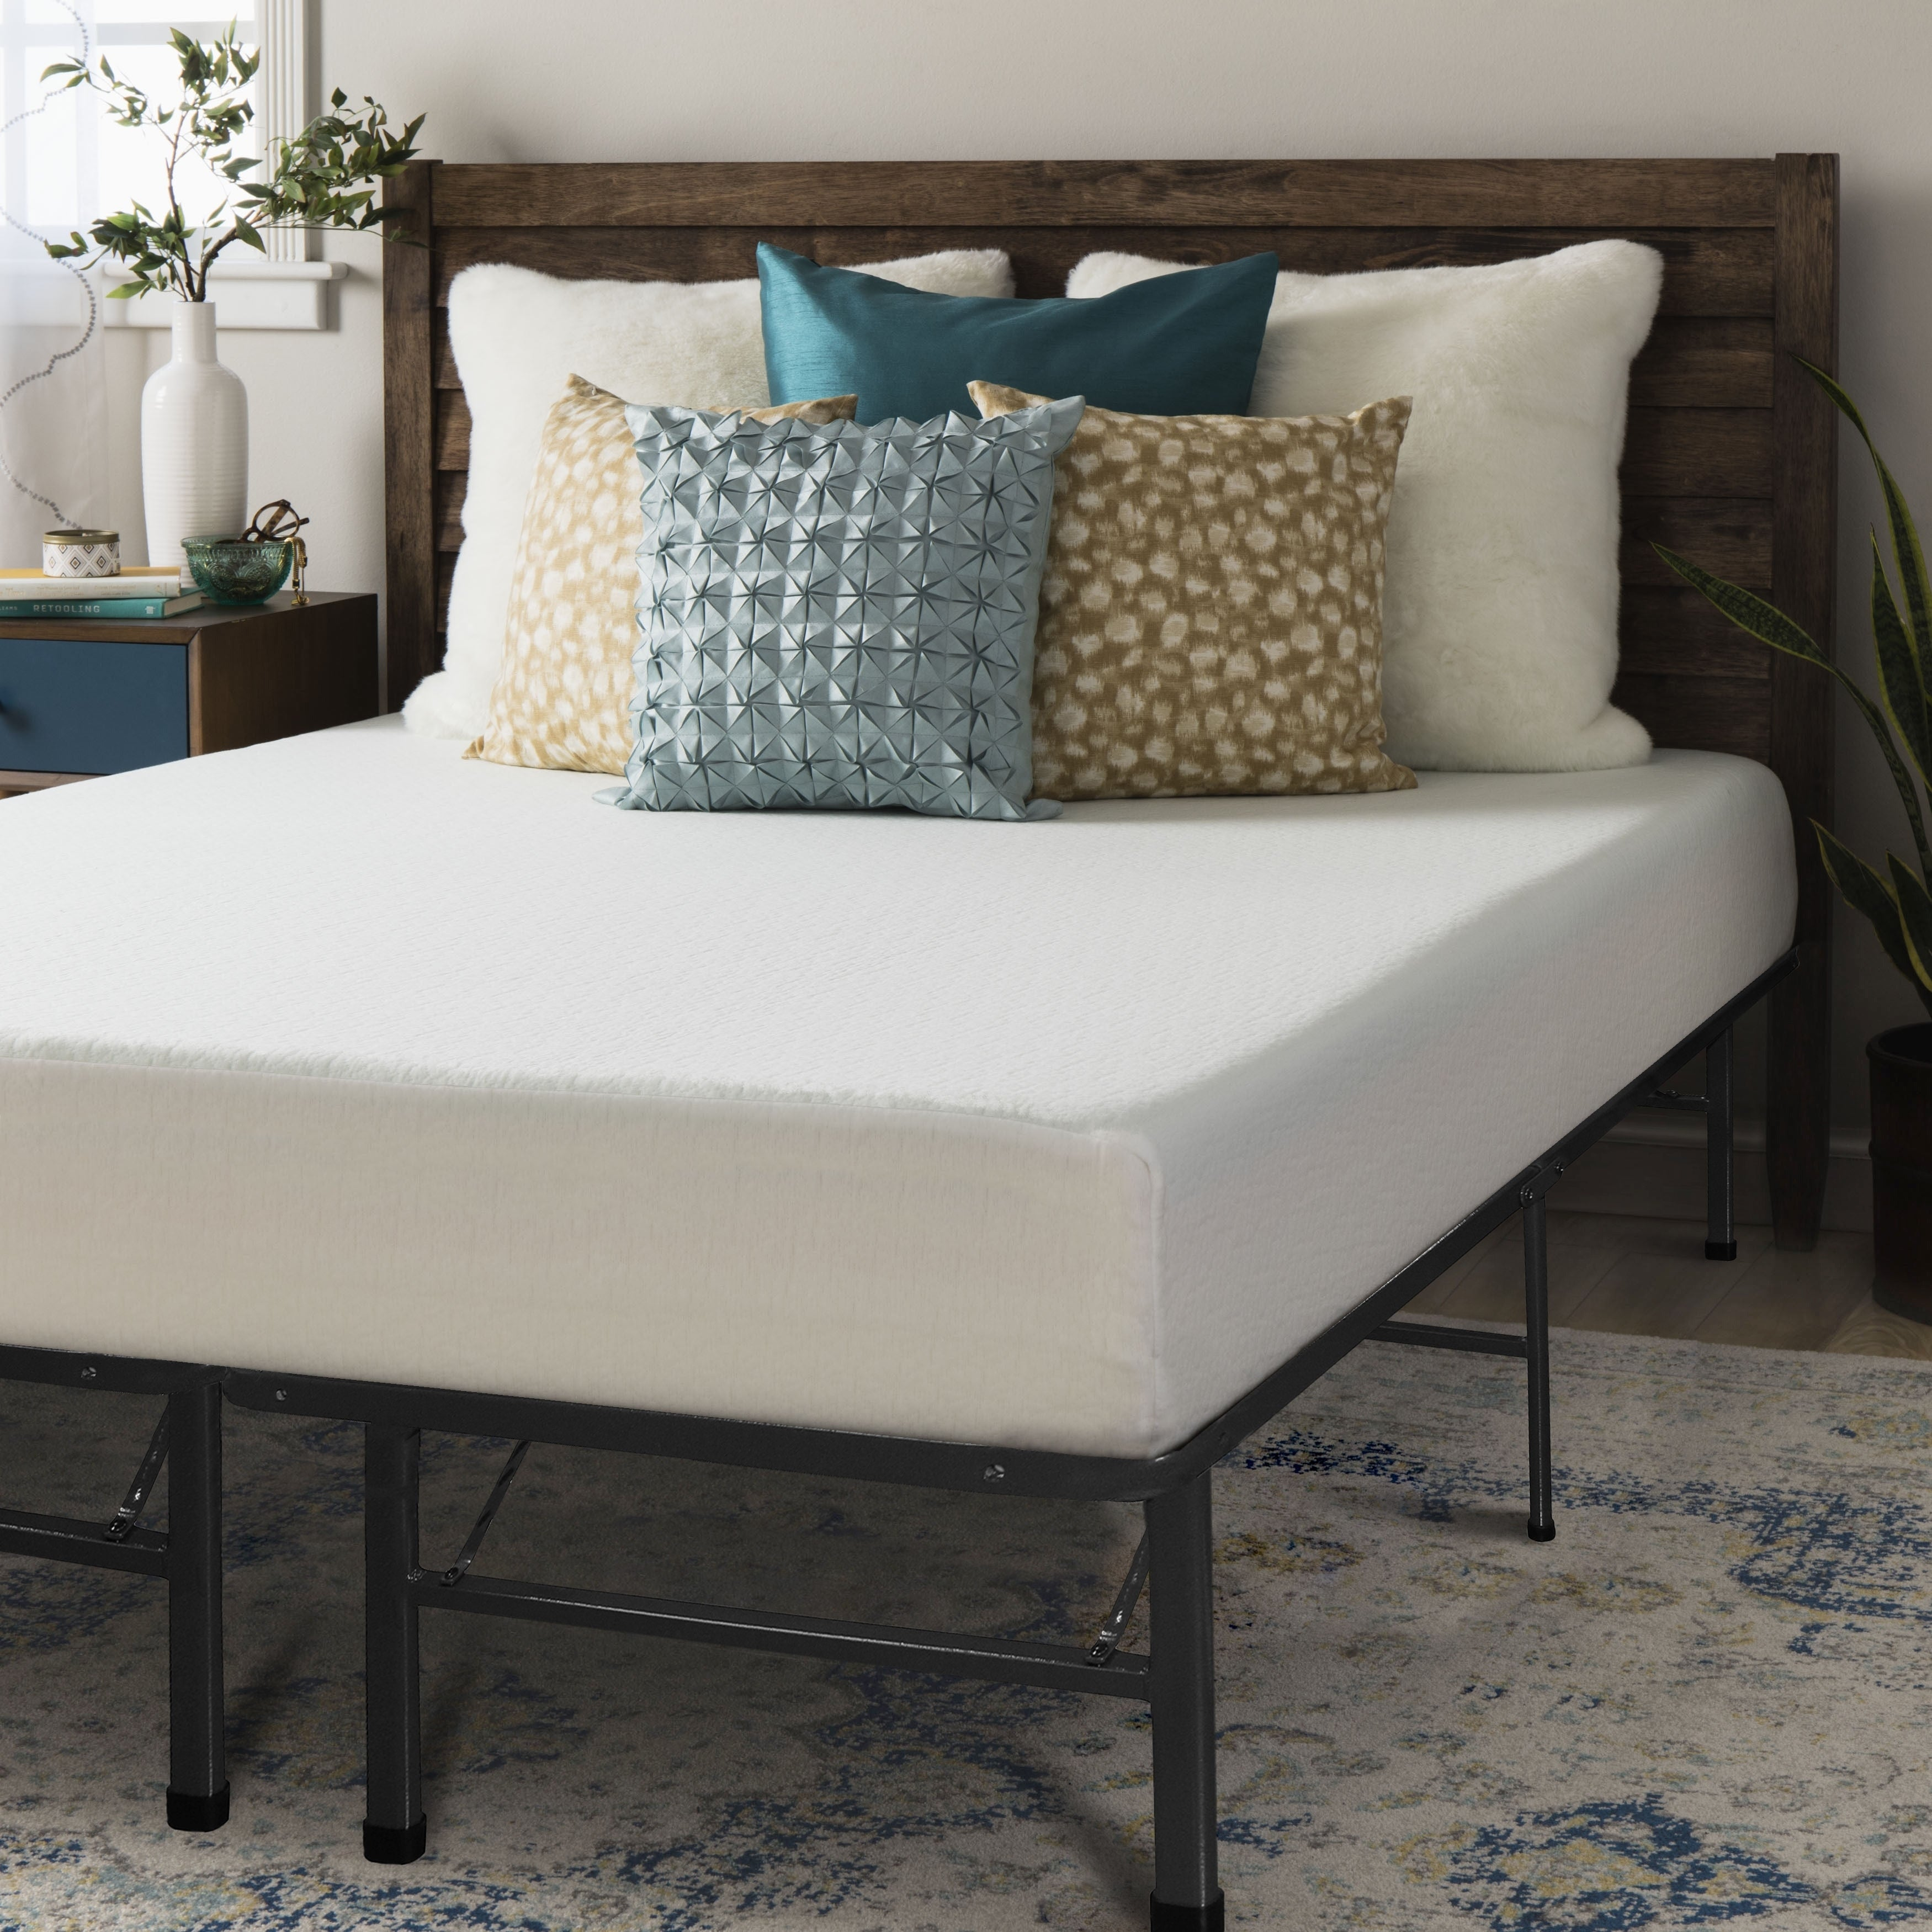 Shop Full size Memory Foam Mattress 8 inch with Bed Frame Set ...